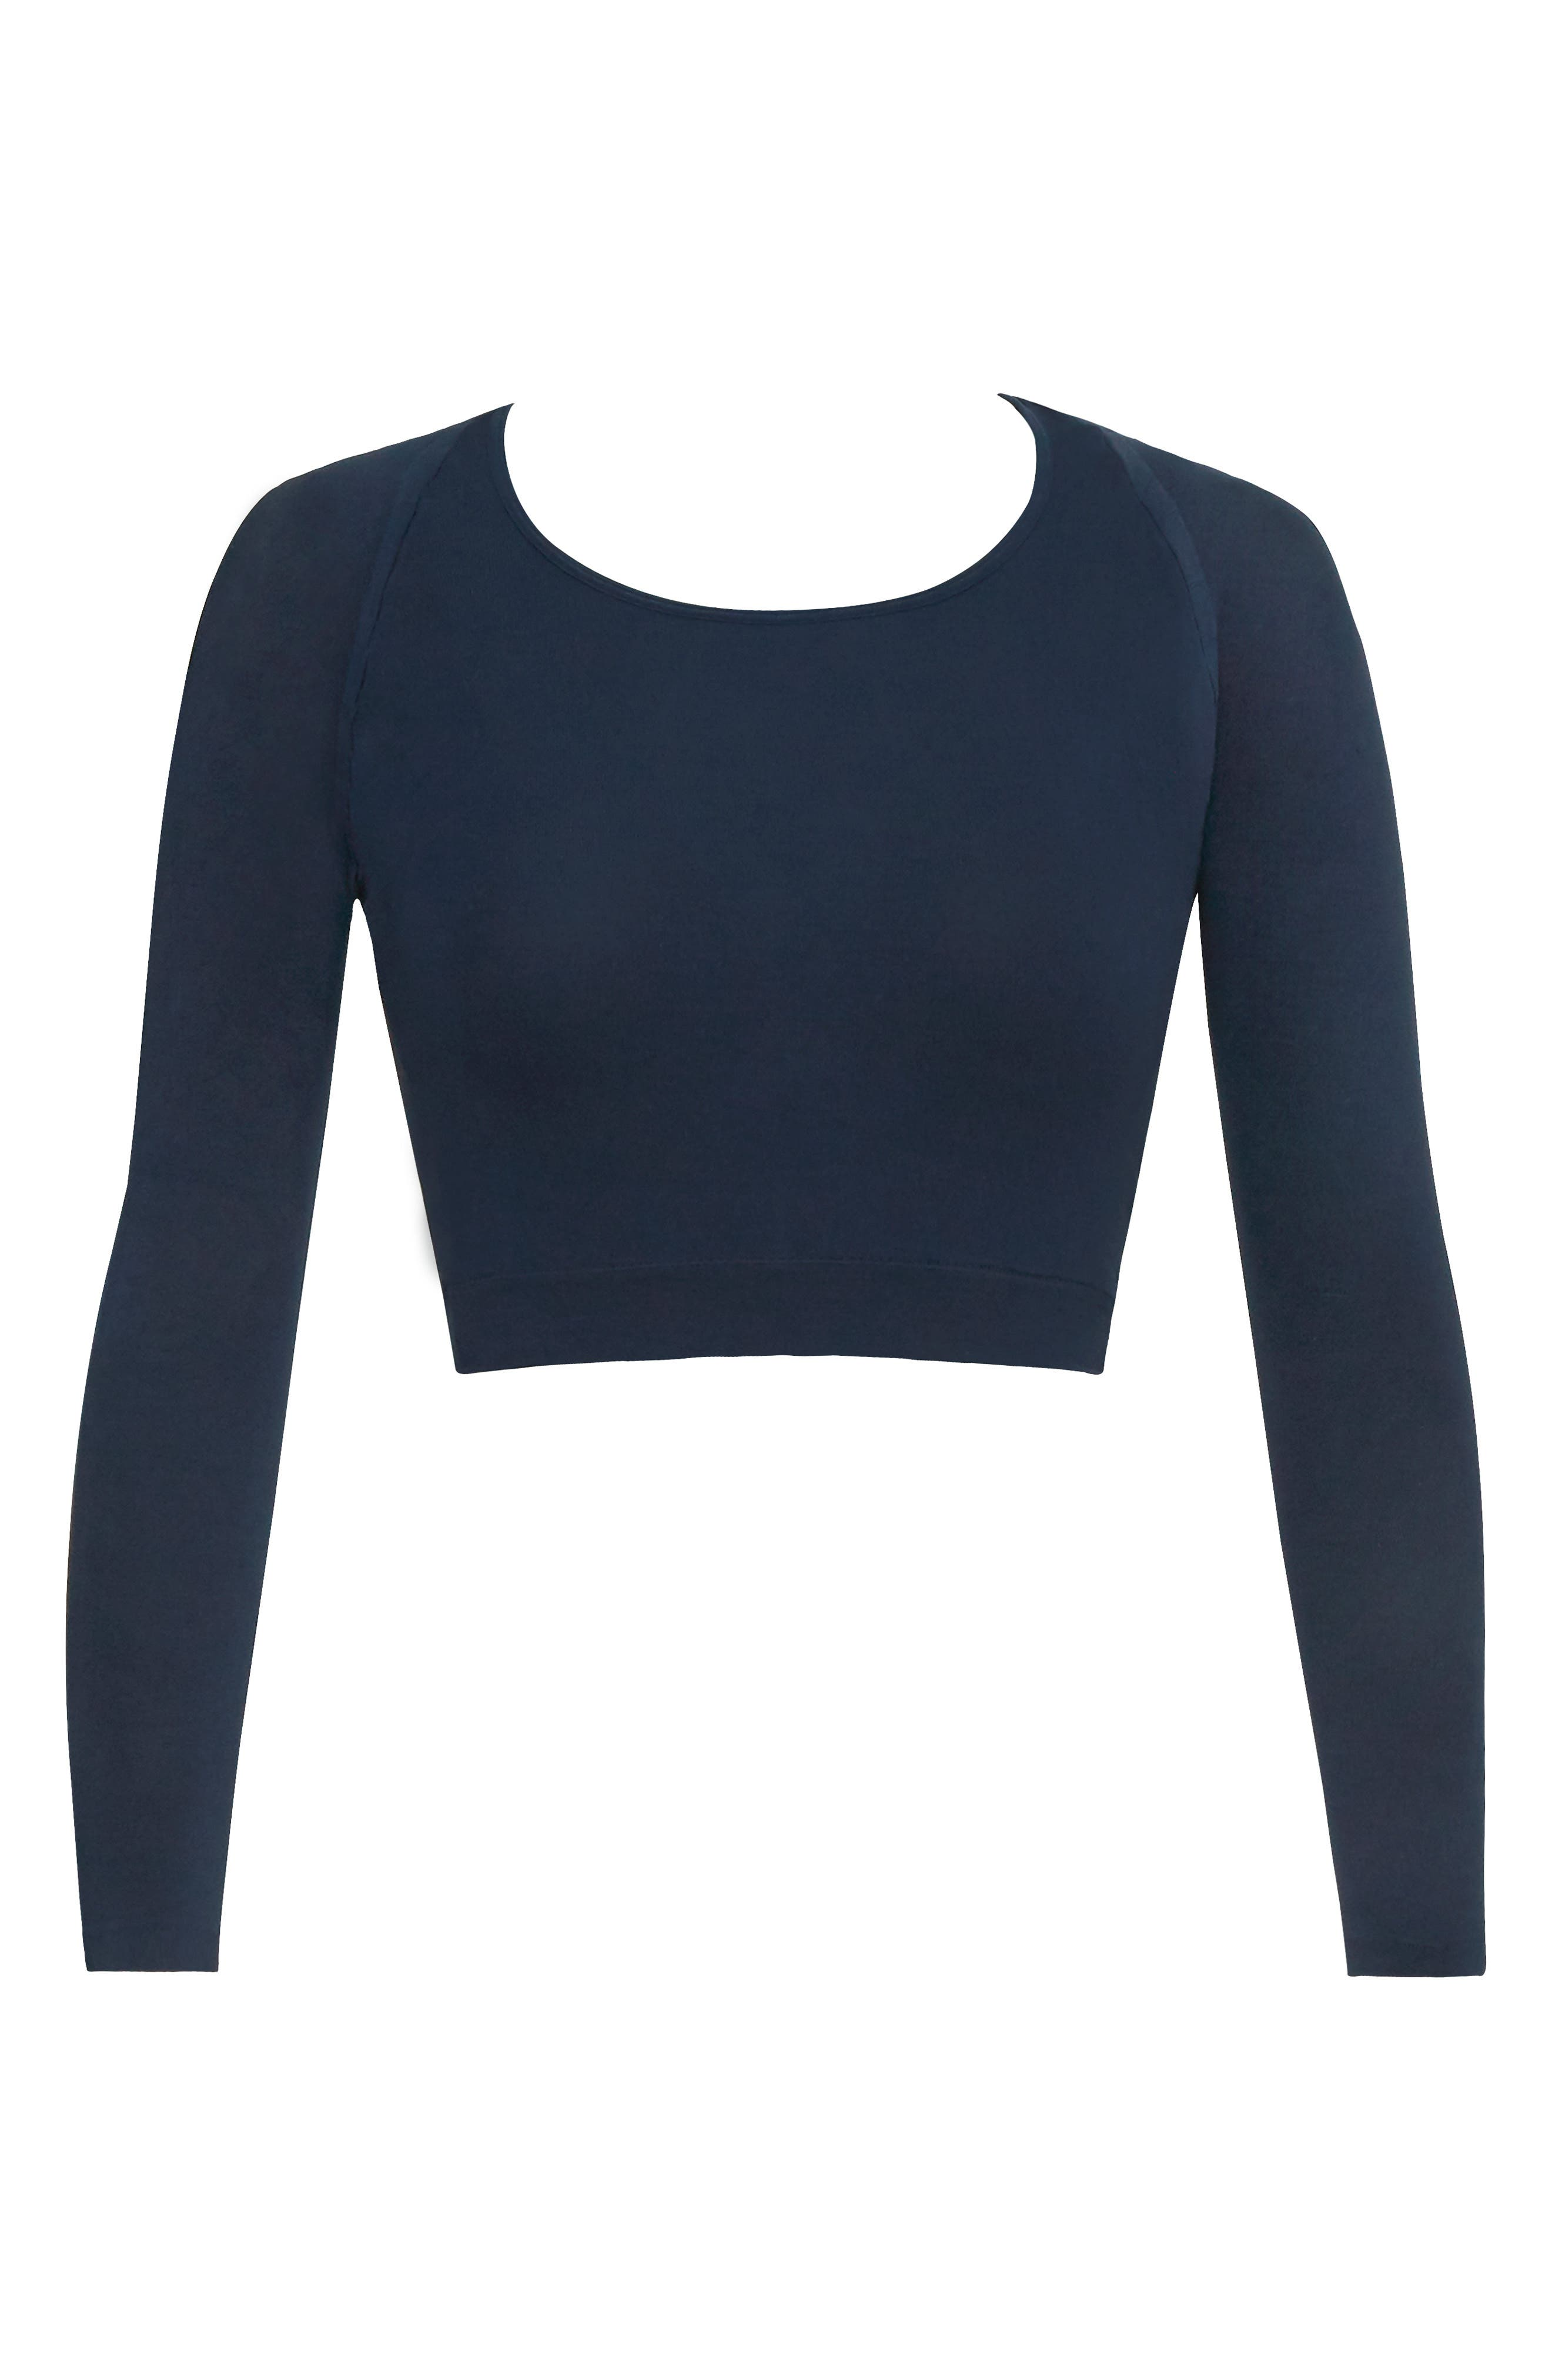 Arm Tights<sup>®</sup> Layering Piece,                         Main,                         color, PORT NAVY